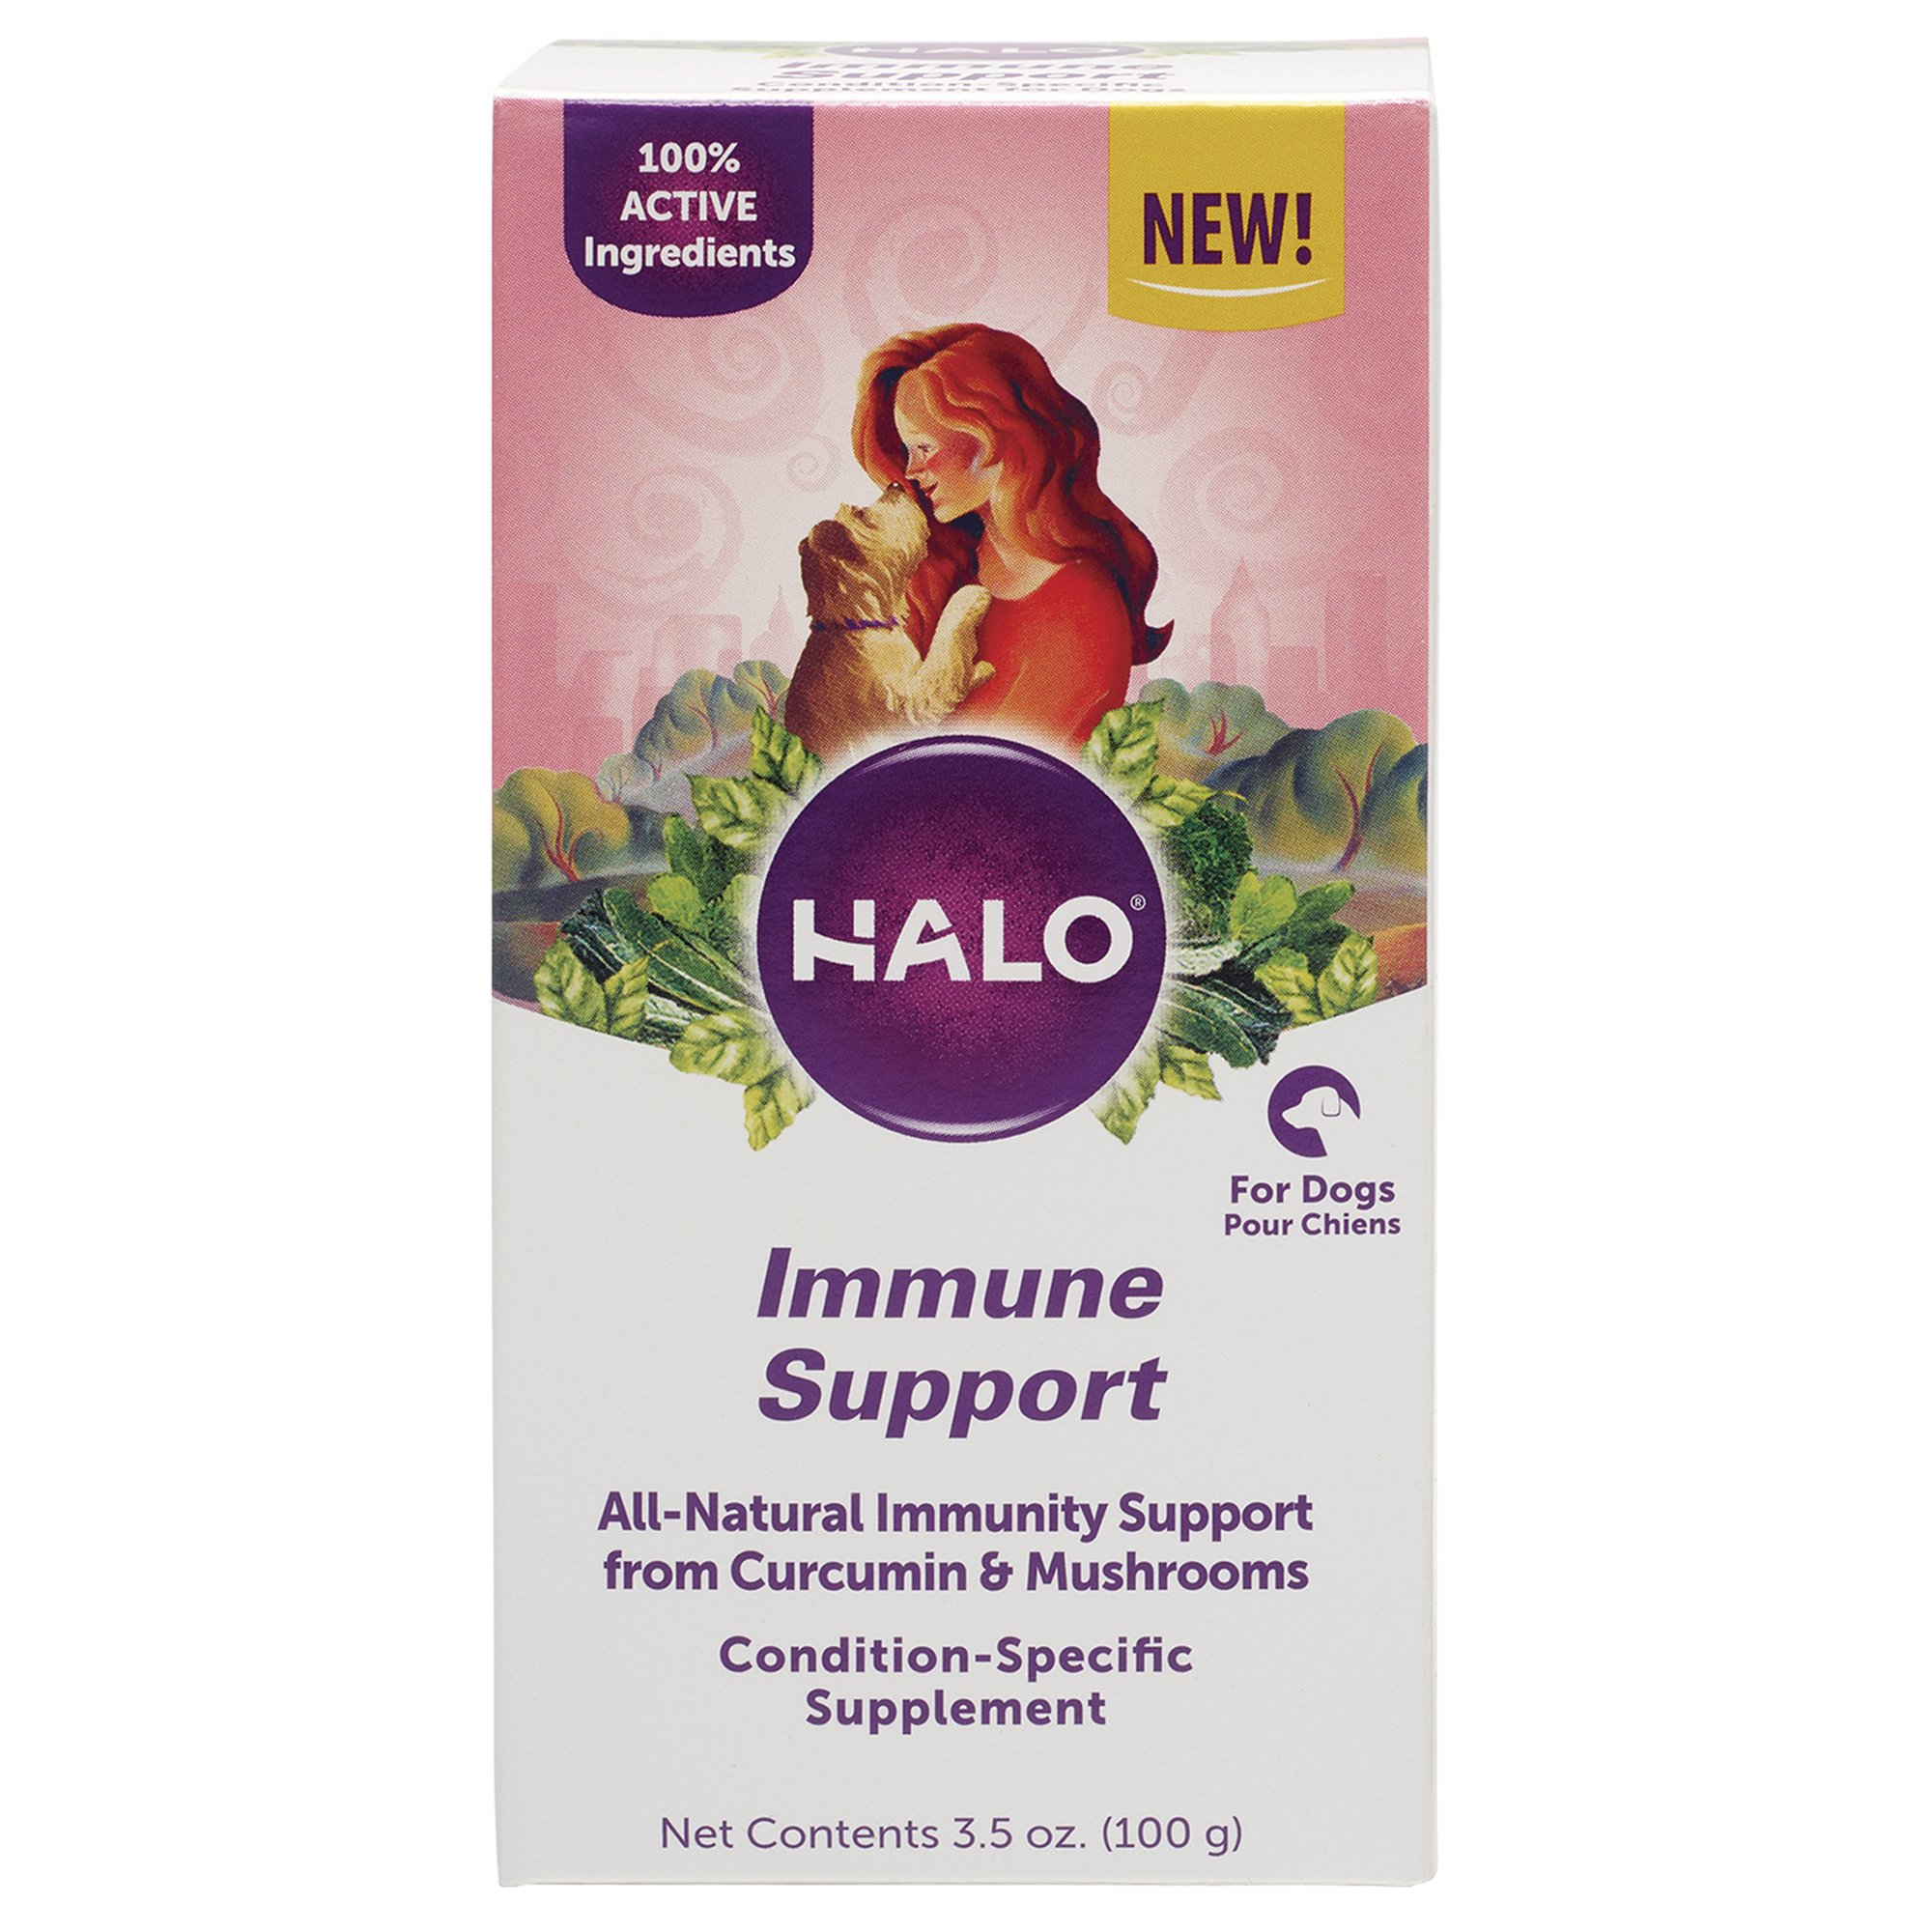 Halo, Purely for Pets 10070 Immune Support Supplement, One Size